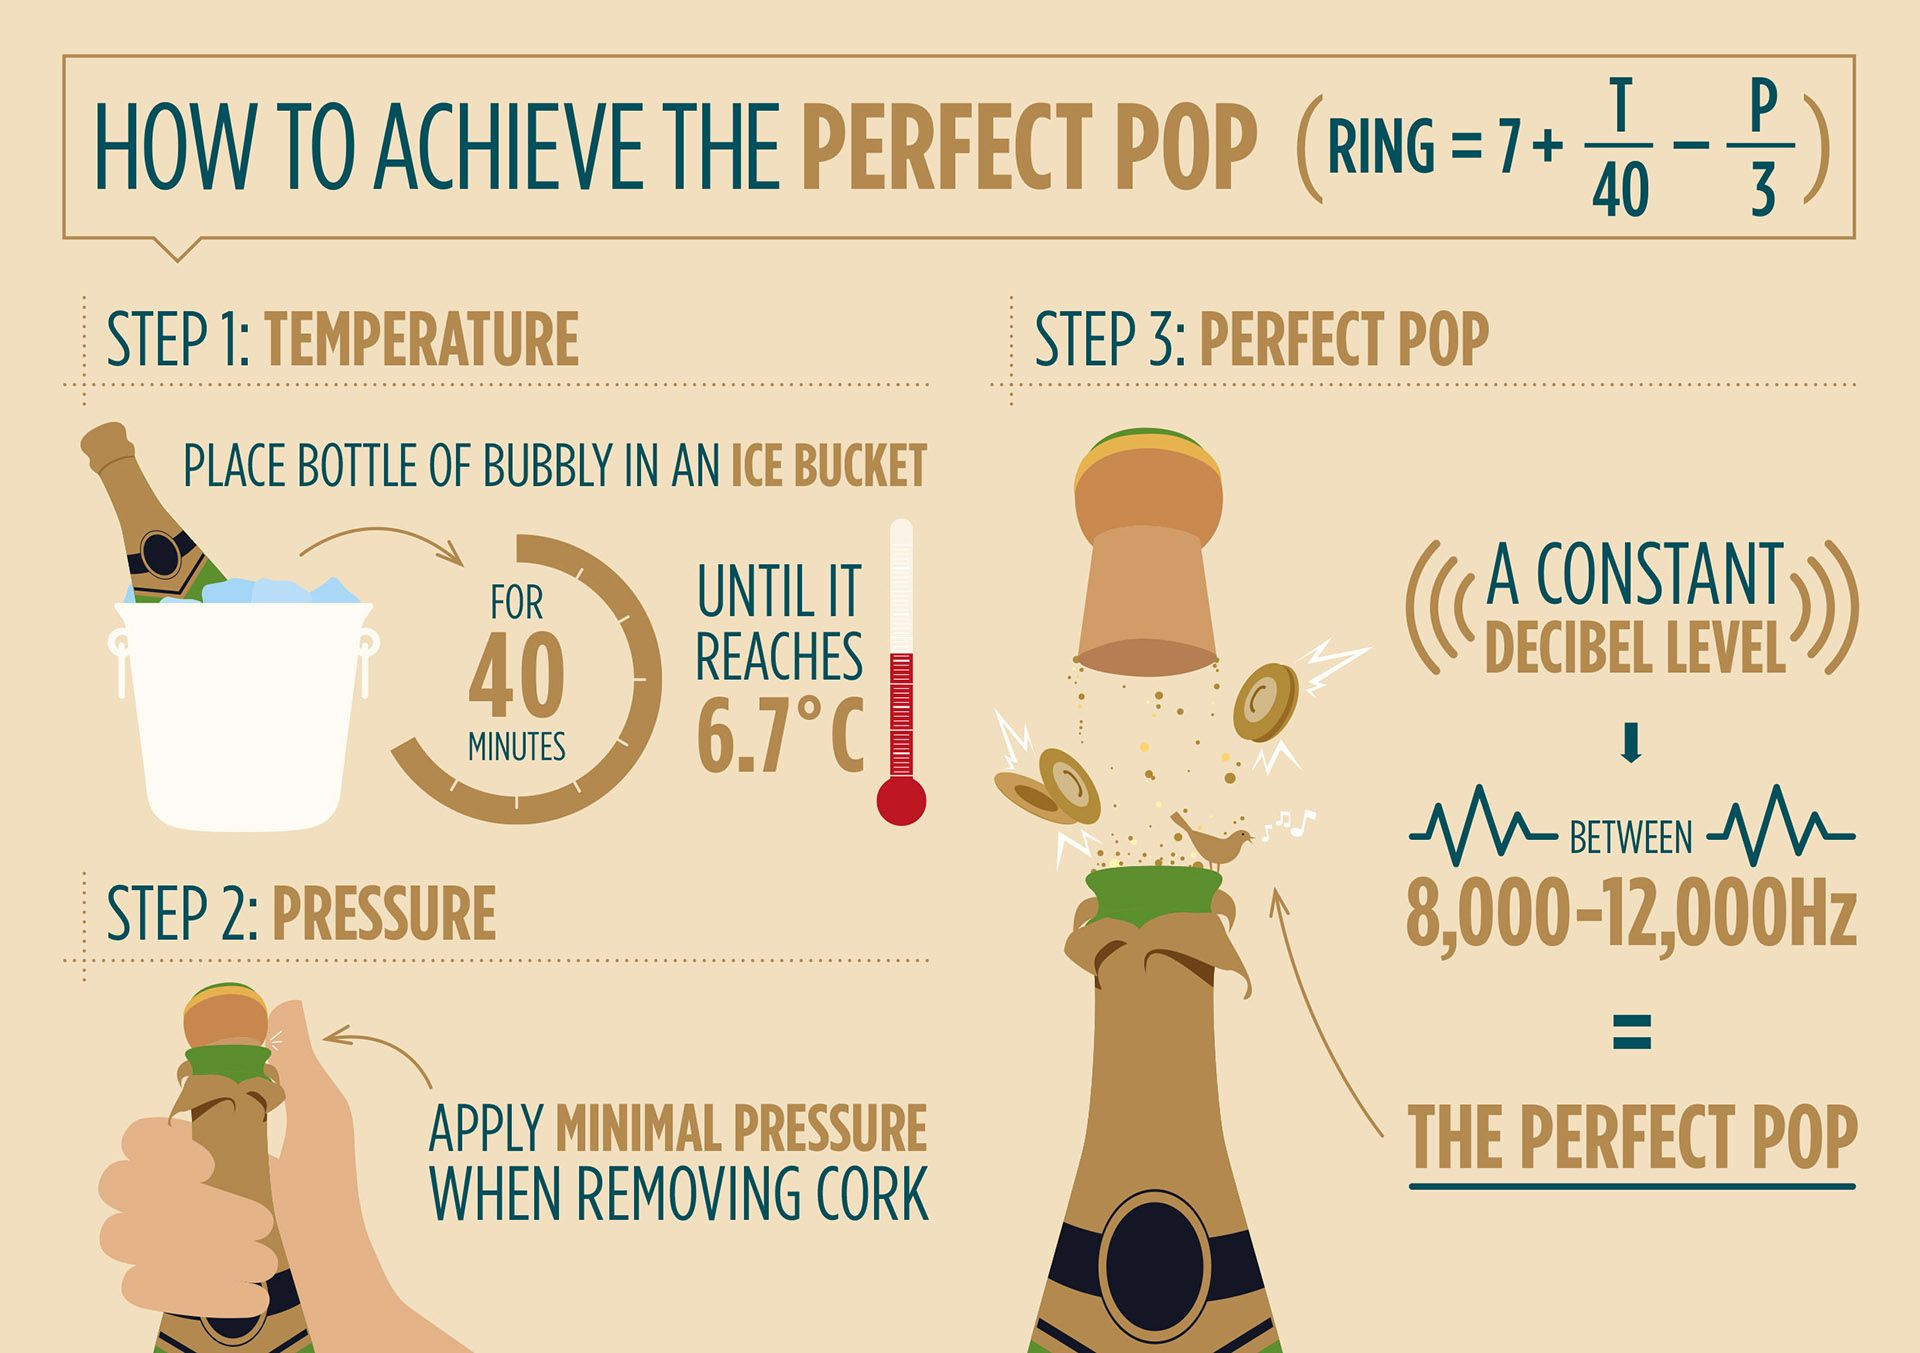 Illustration for the perfect pop